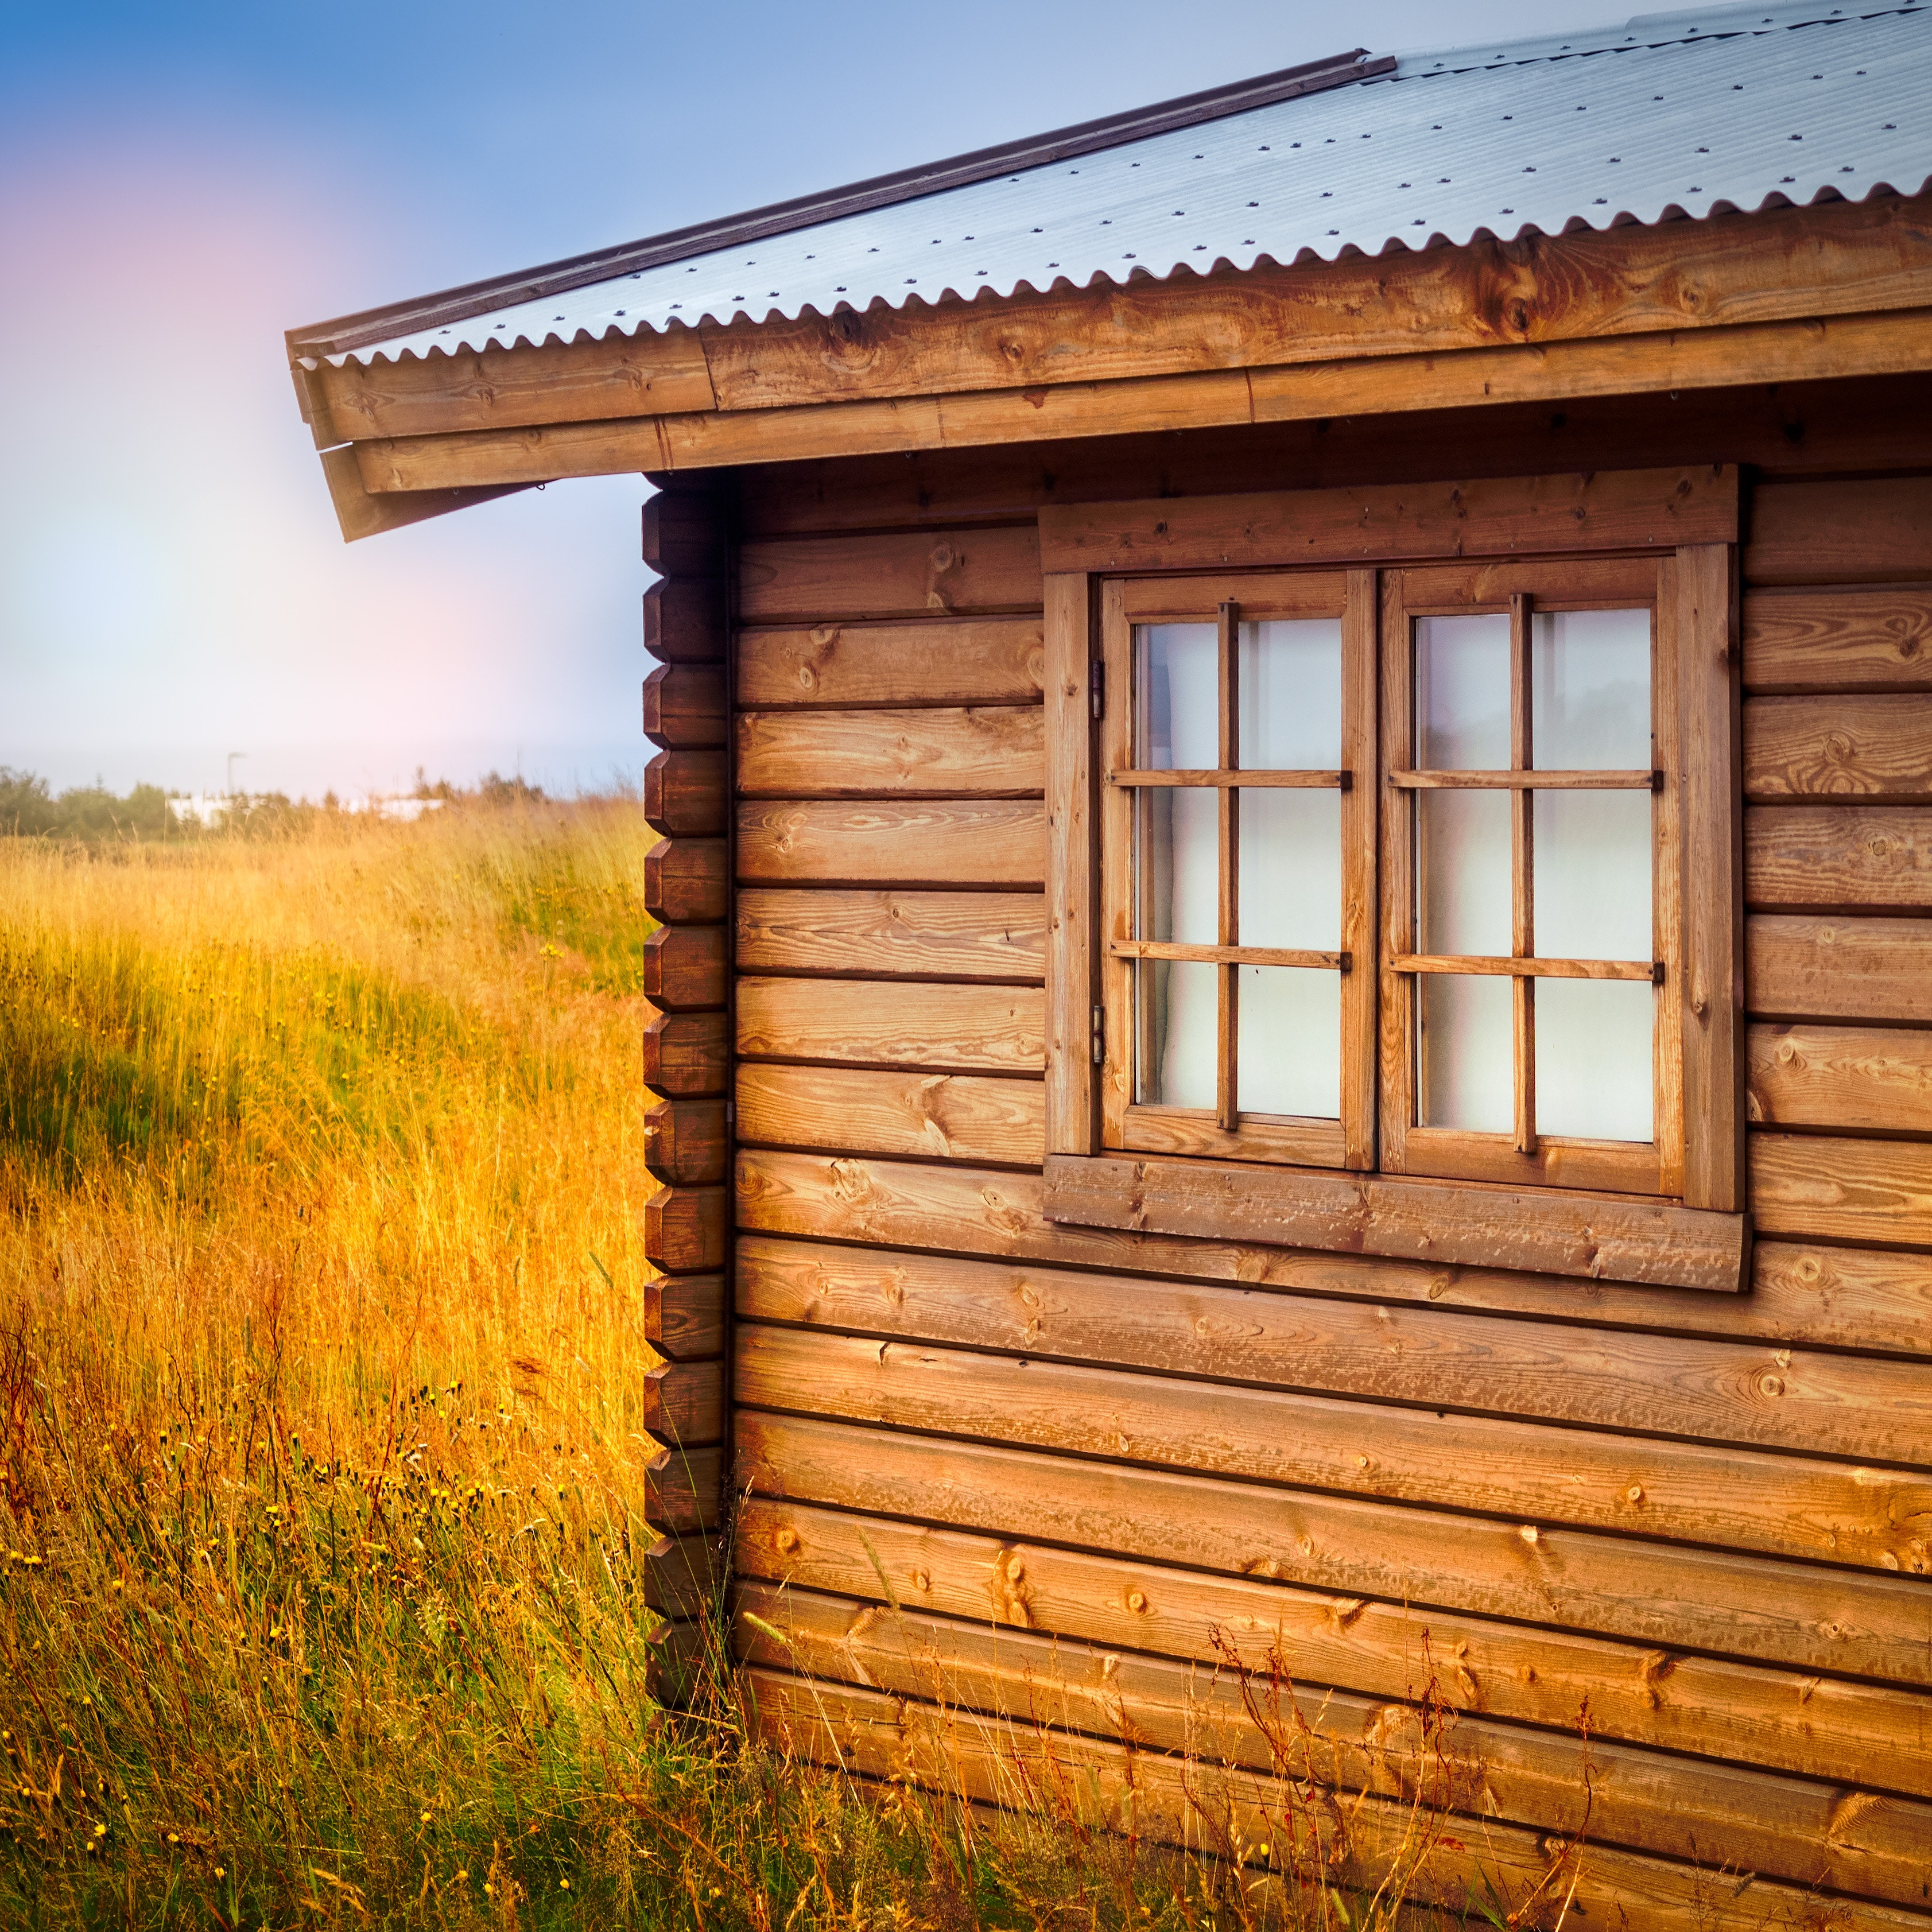 Brown Wooden Cottage at the Field during Day, Architecture, Rural, Wooden cabin, Wooden, HQ Photo